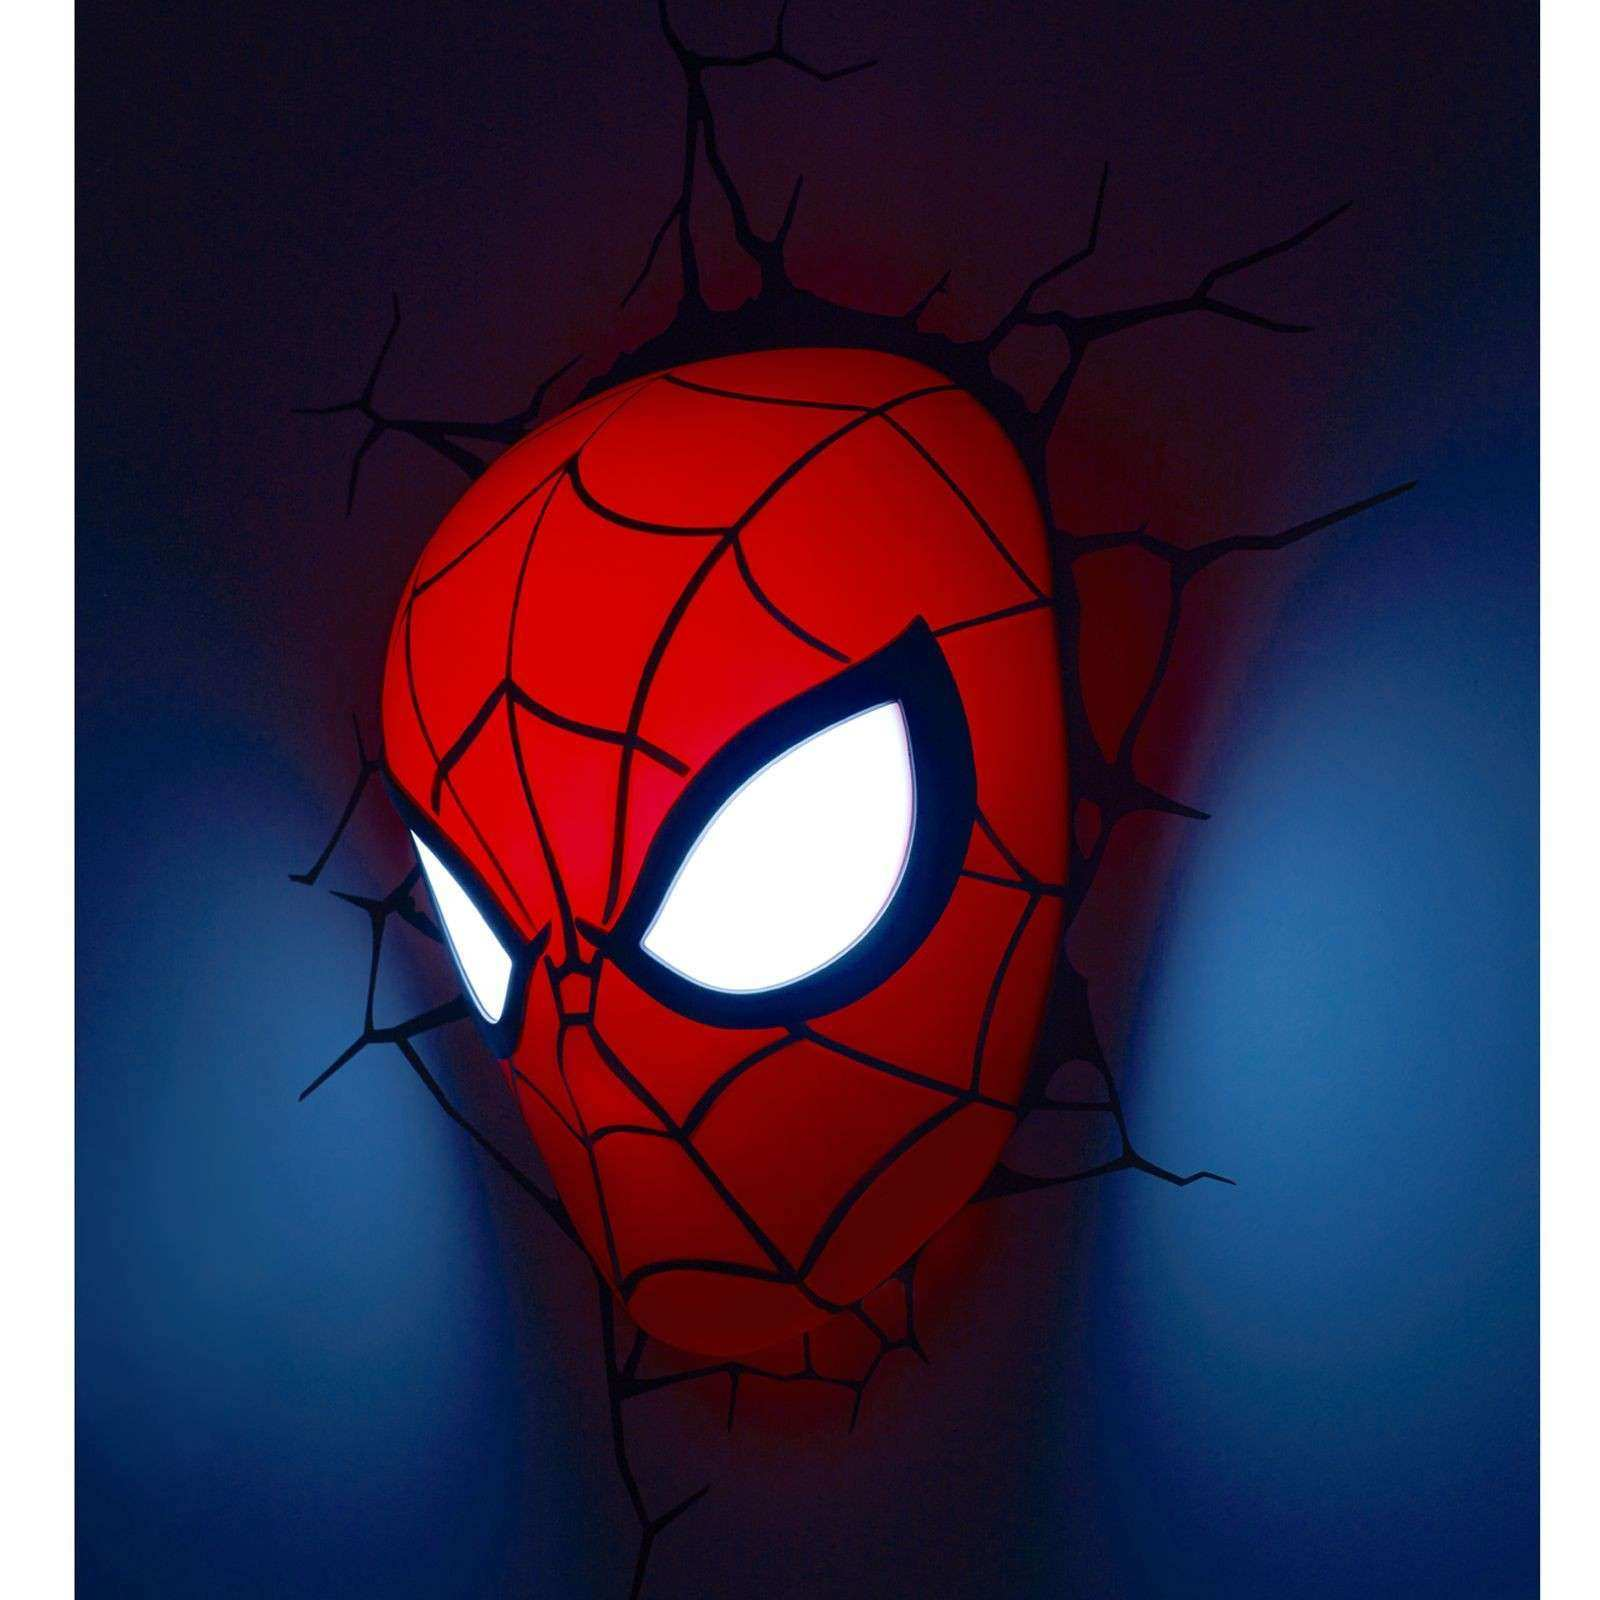 MARVEL SPIDERMAN 3D LED WALL LIGHT LAMP MASK STICKERS NEW